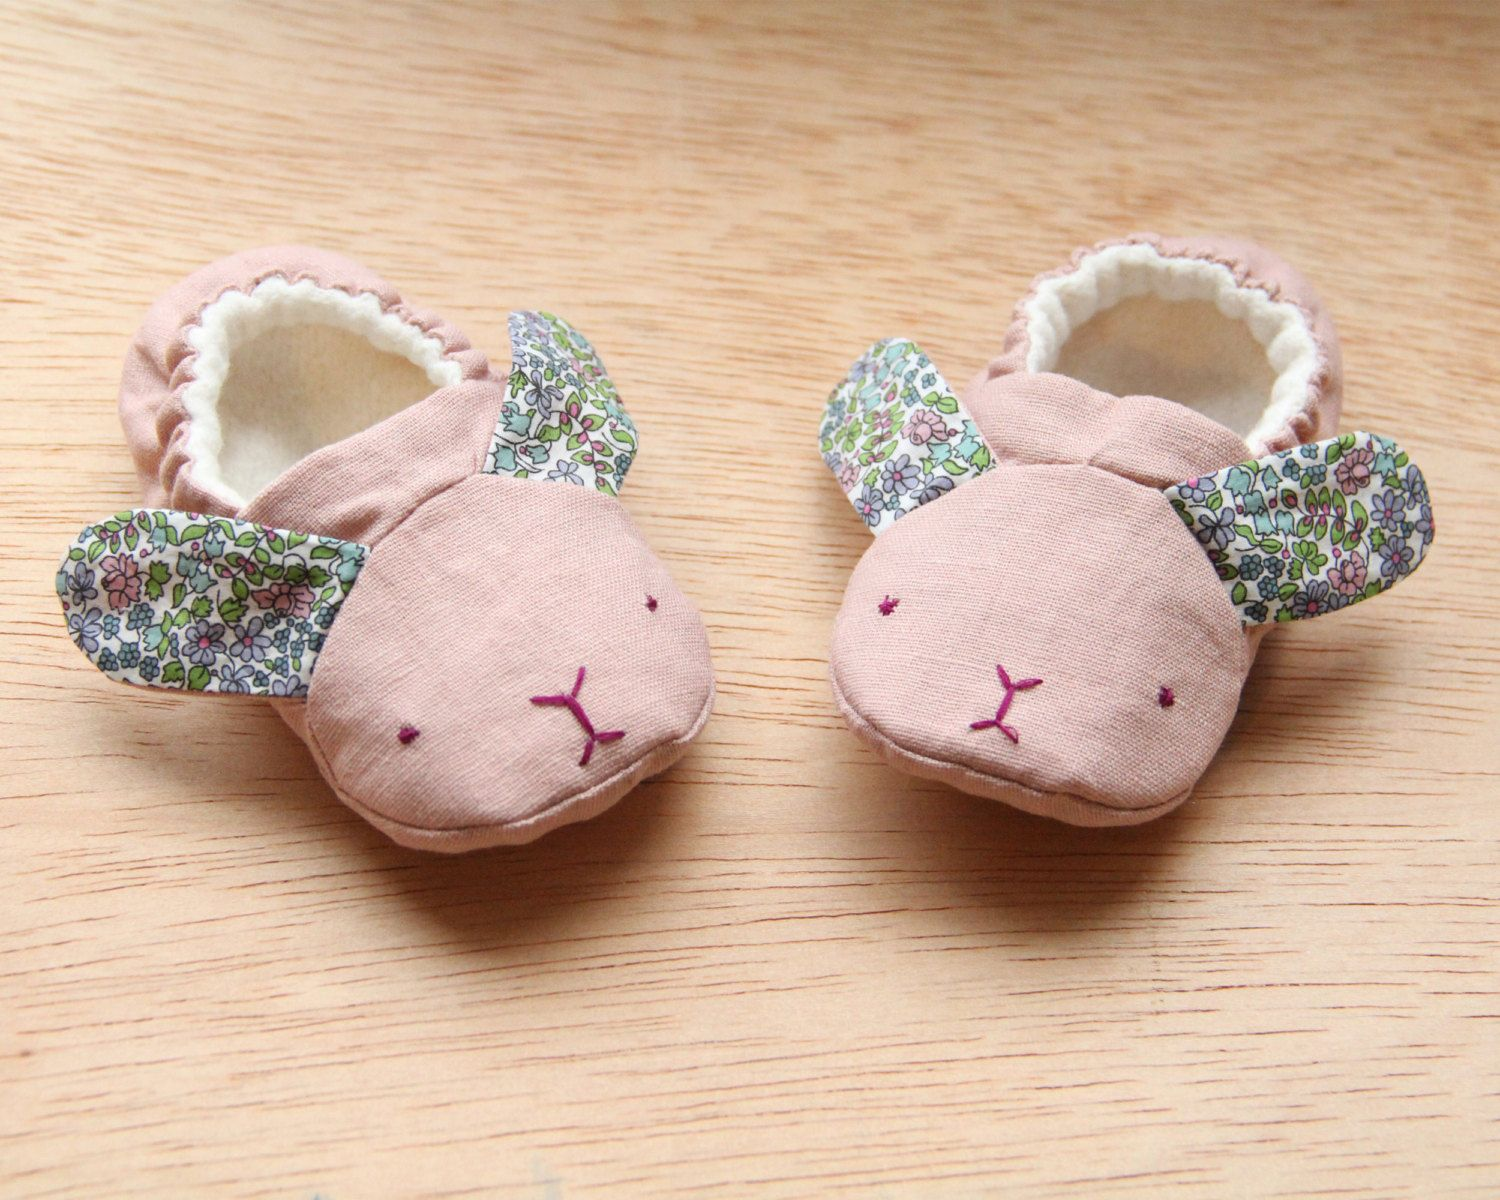 Handmade baby soft sole shoe. Baby moccasins. Baby slippers. New baby gift. Bunny shoes. Stocking filler. Crib shoes. Baby booties. by BloomingKiwi on Etsy